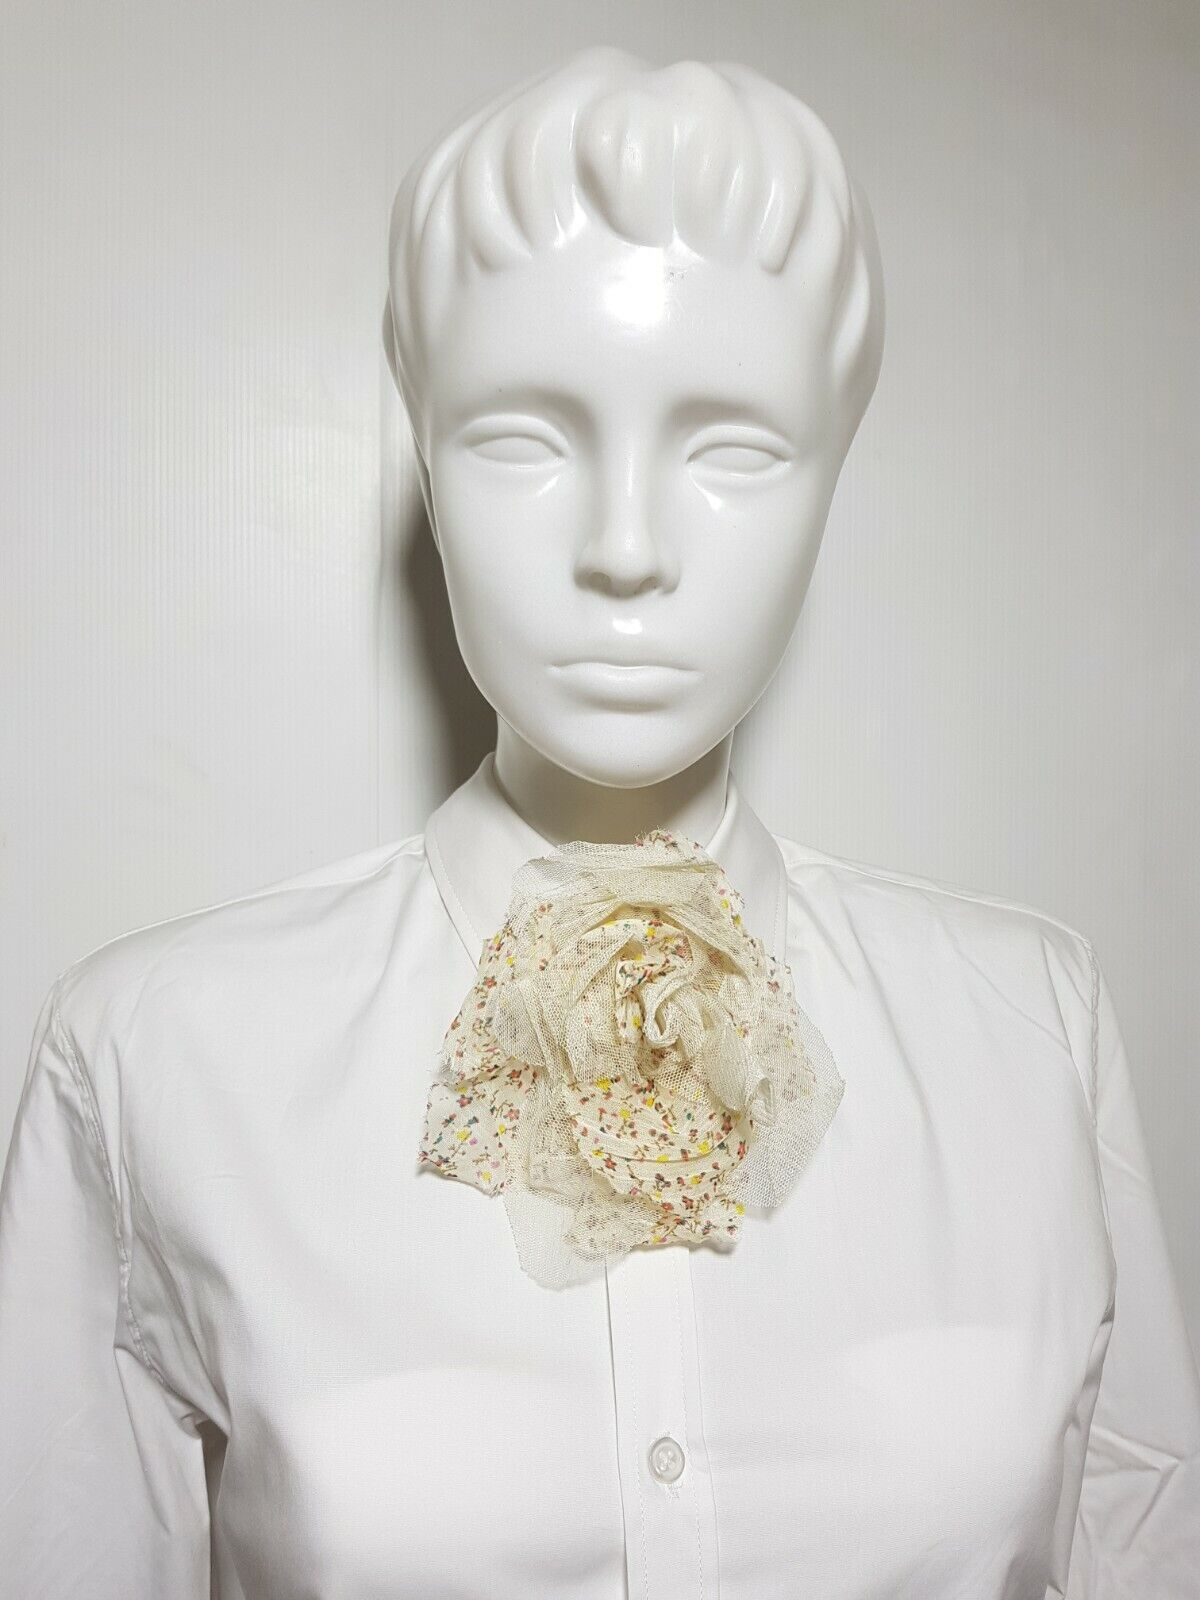 New Claire's Girl's Women's Bow Tie Beige Lace Flower Bowties Floral pattern